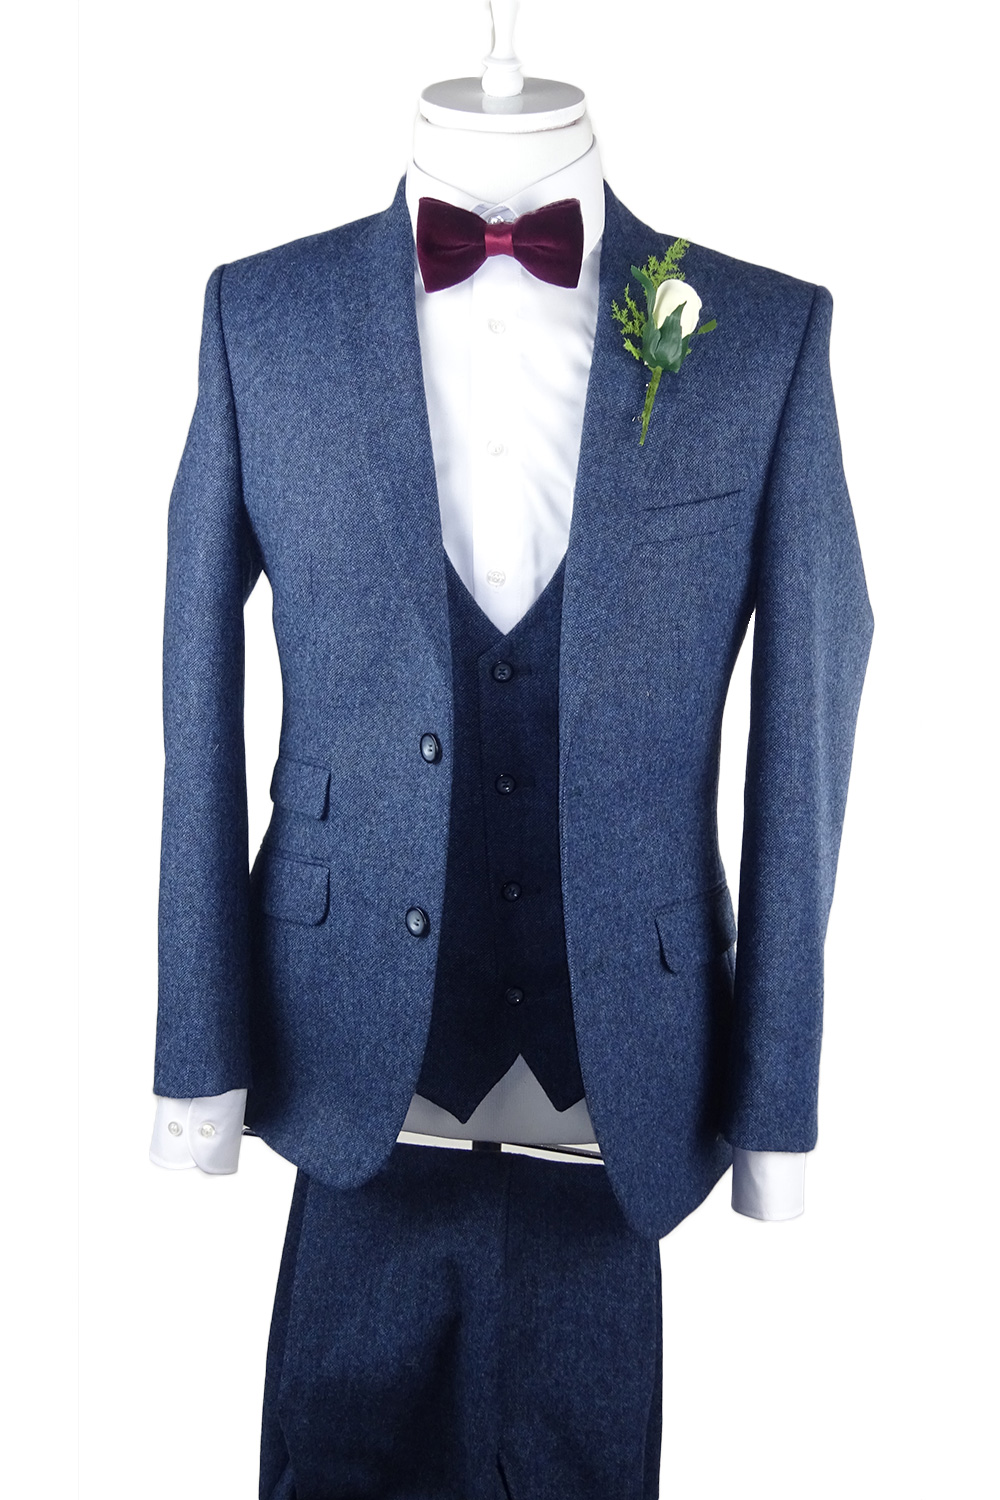 Petrol Tweed 3 Piece Suit